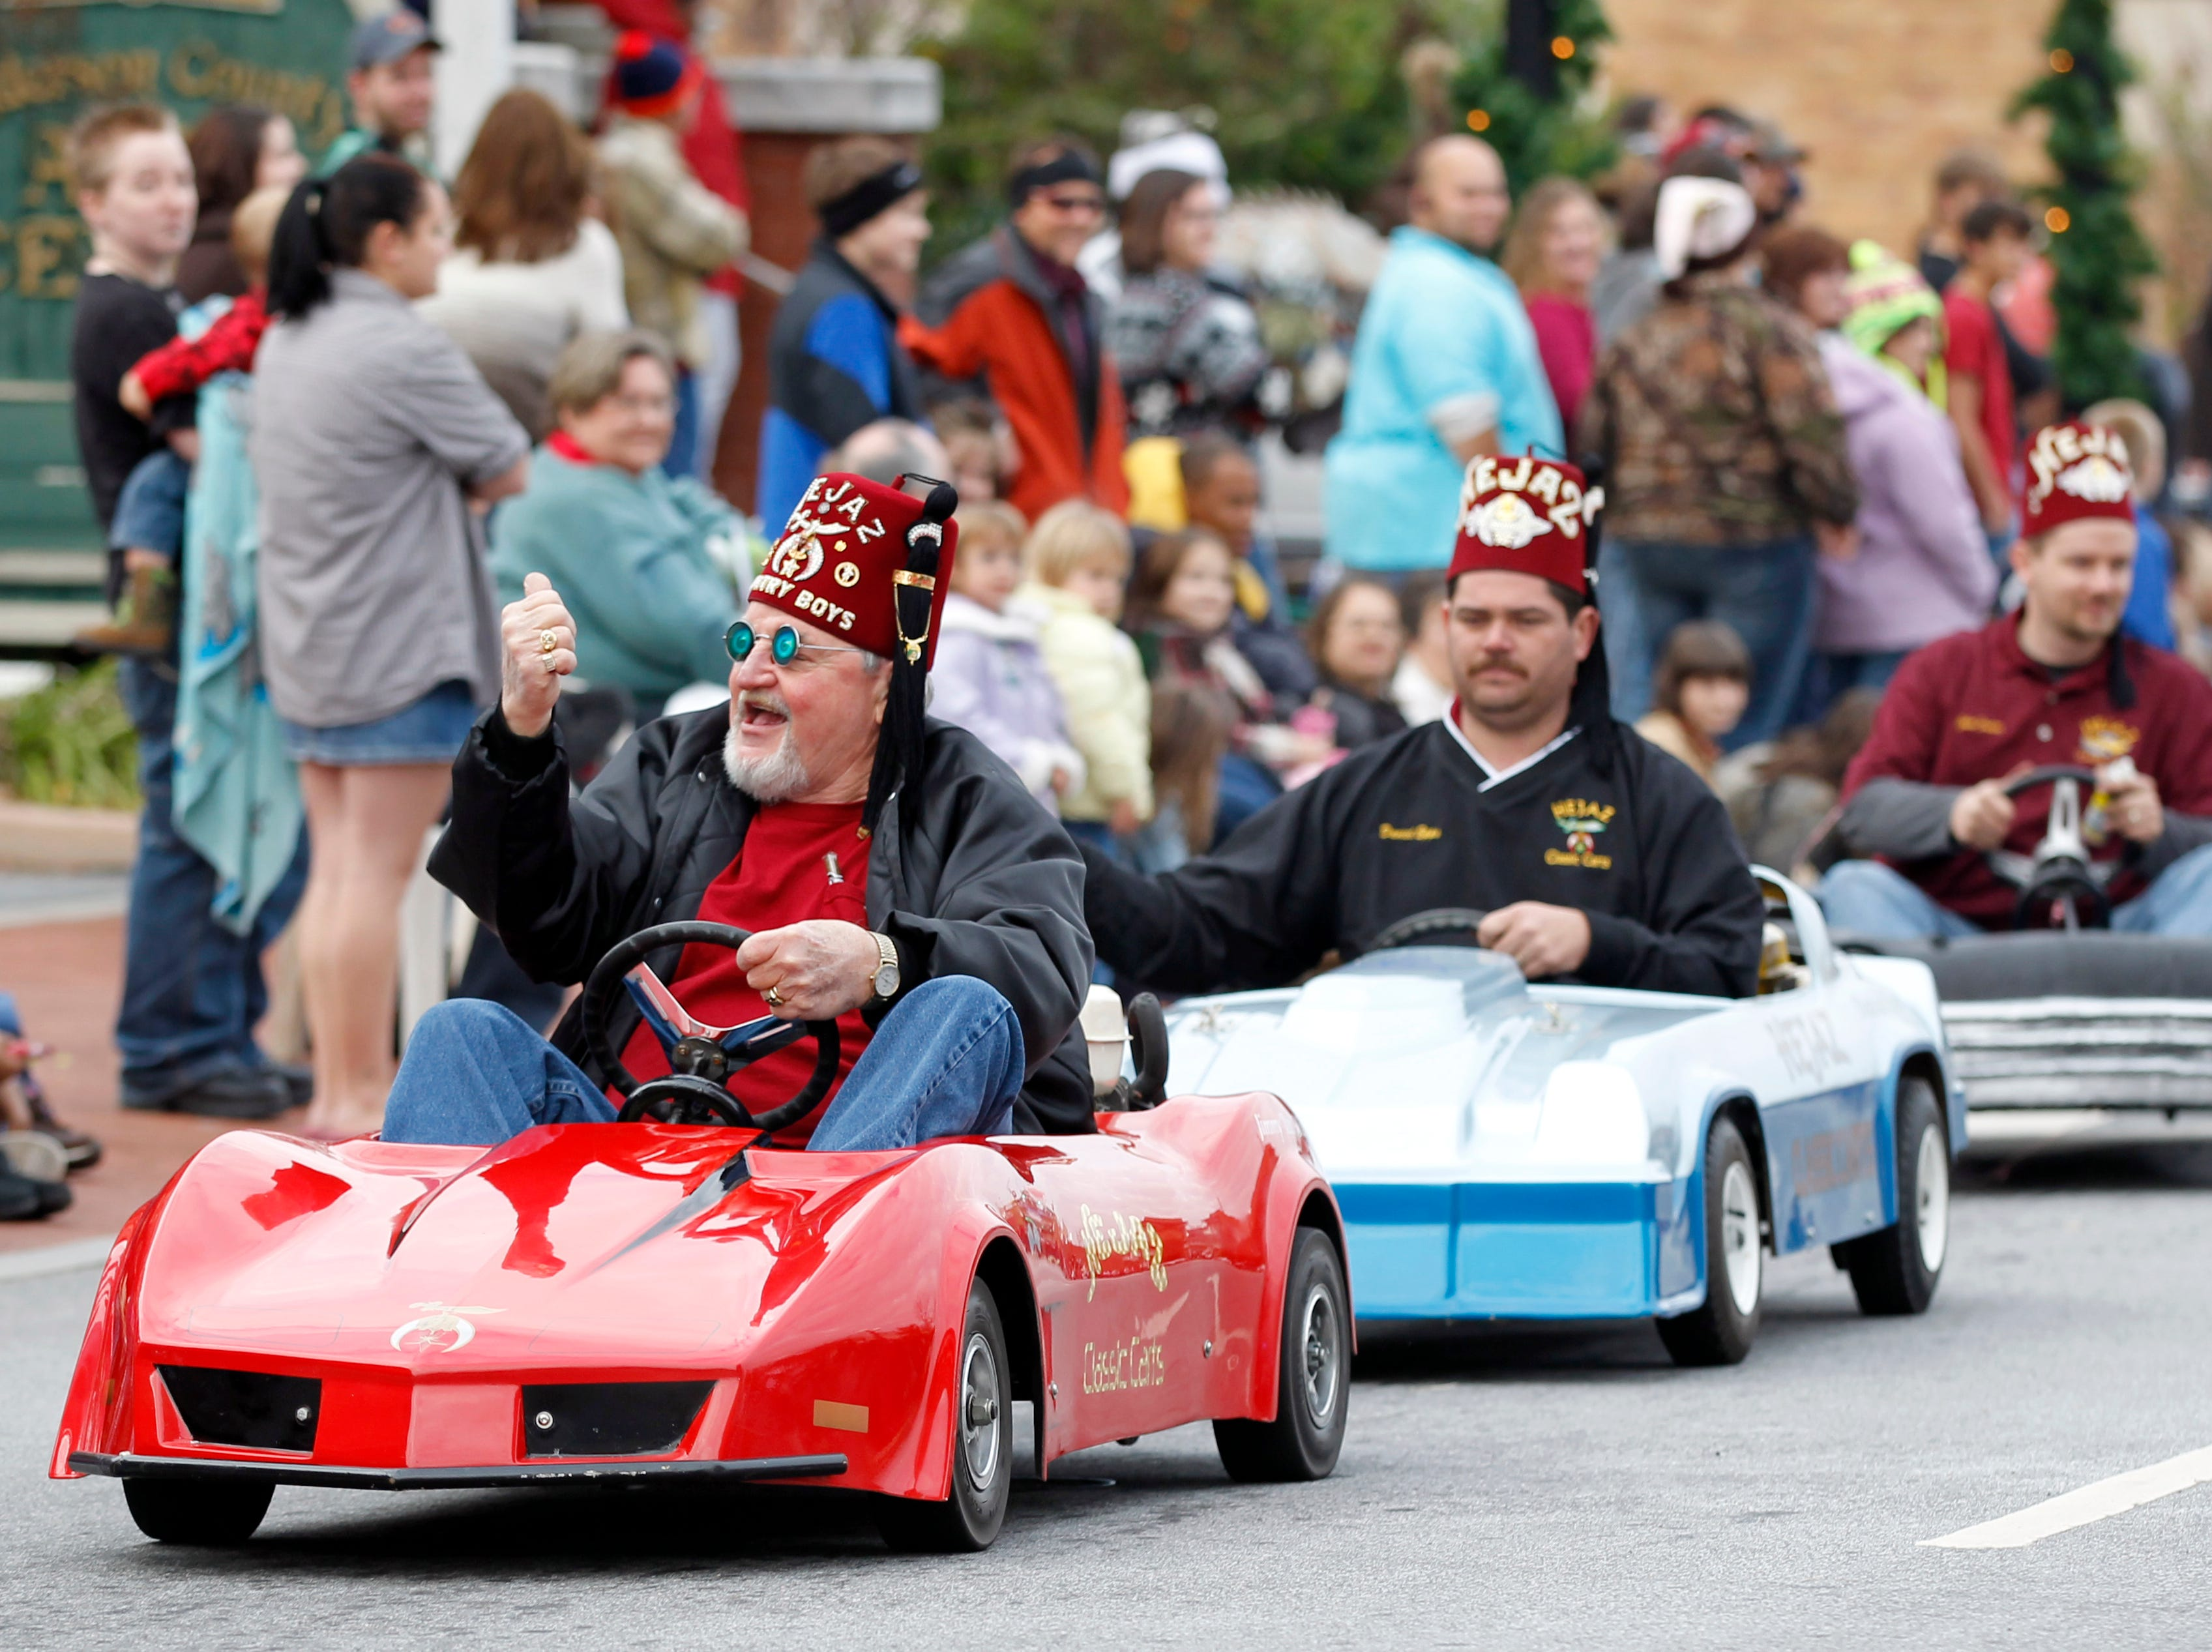 Hejaz Shriners ride miniature cars along Main Street during Sunday's Christmas parade in Anderson in 2011.